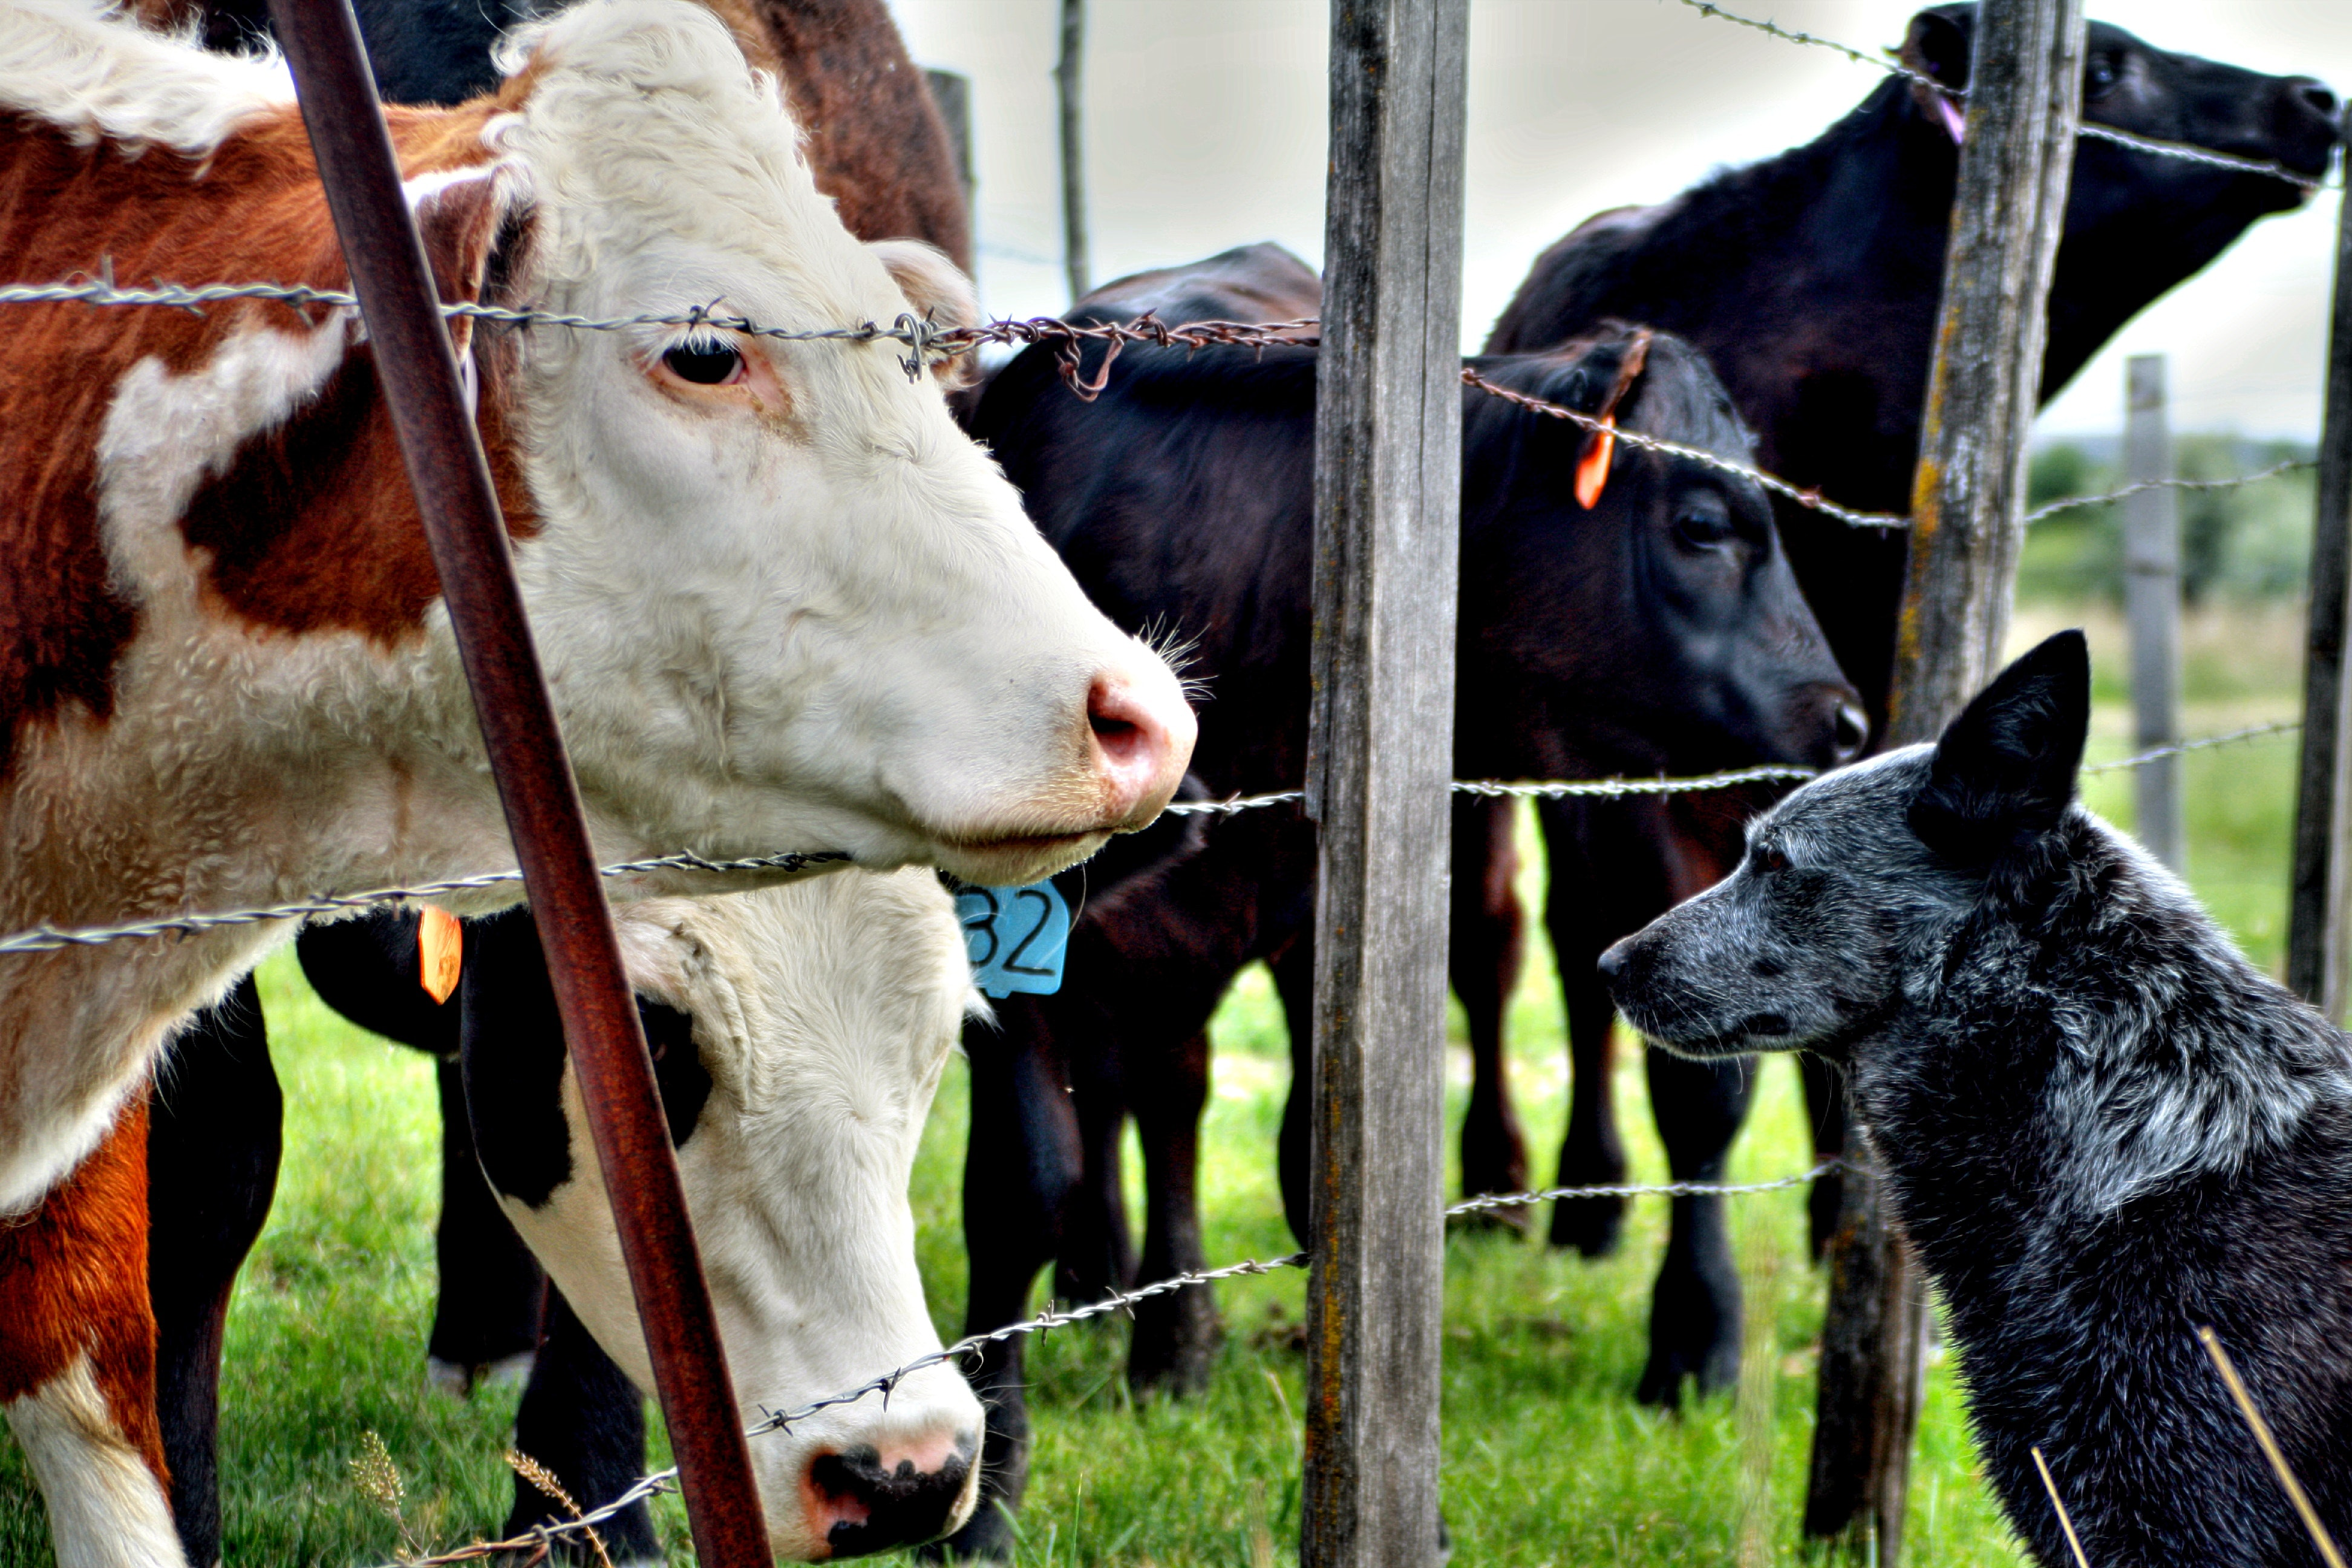 Cows and Dog - Owners have responsibility